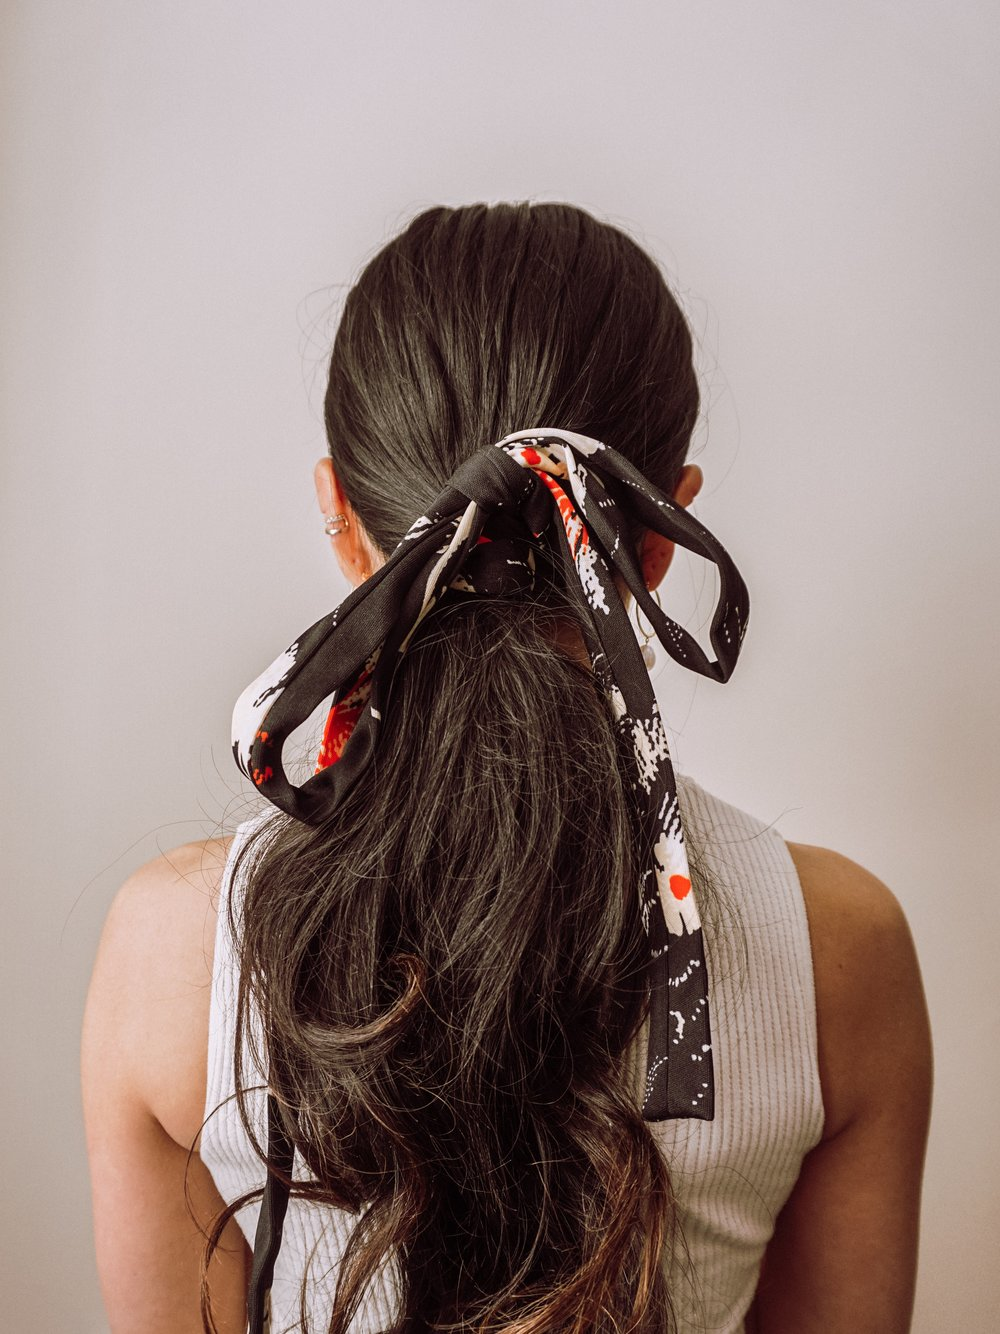 That's it! - I love this easy hairstyling with scarves!